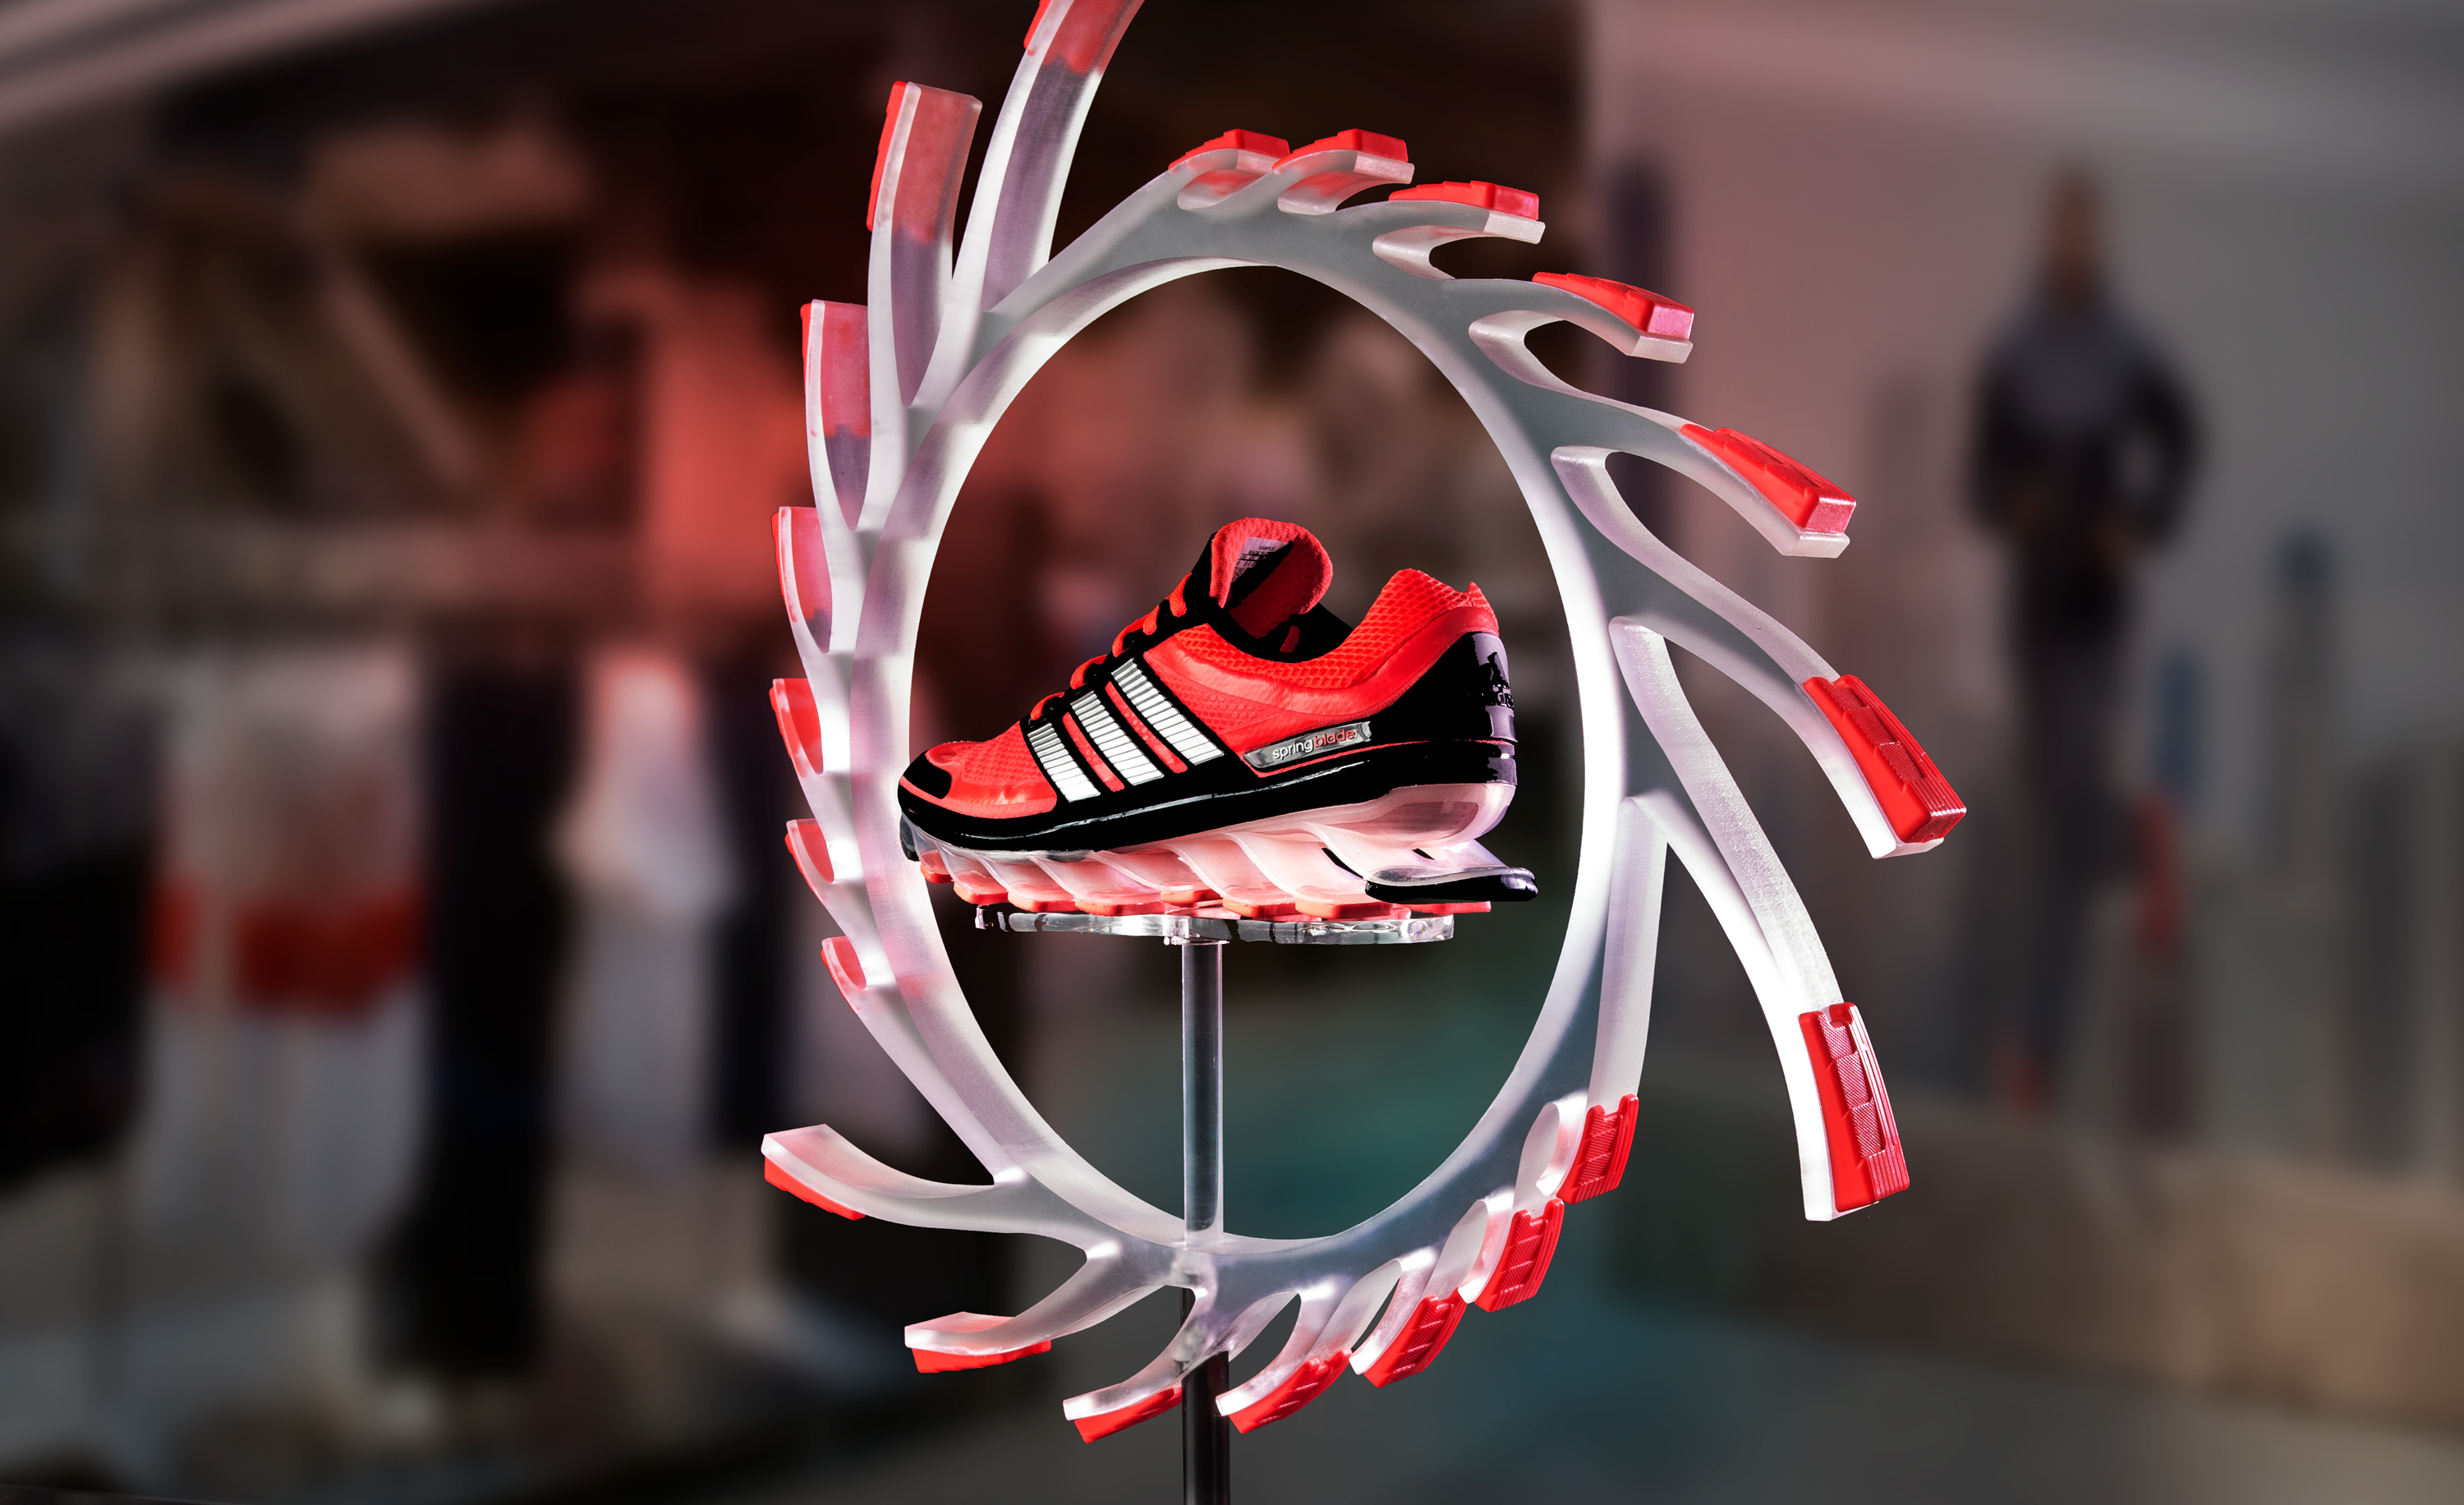 adidas Springblade shoe fixture in store